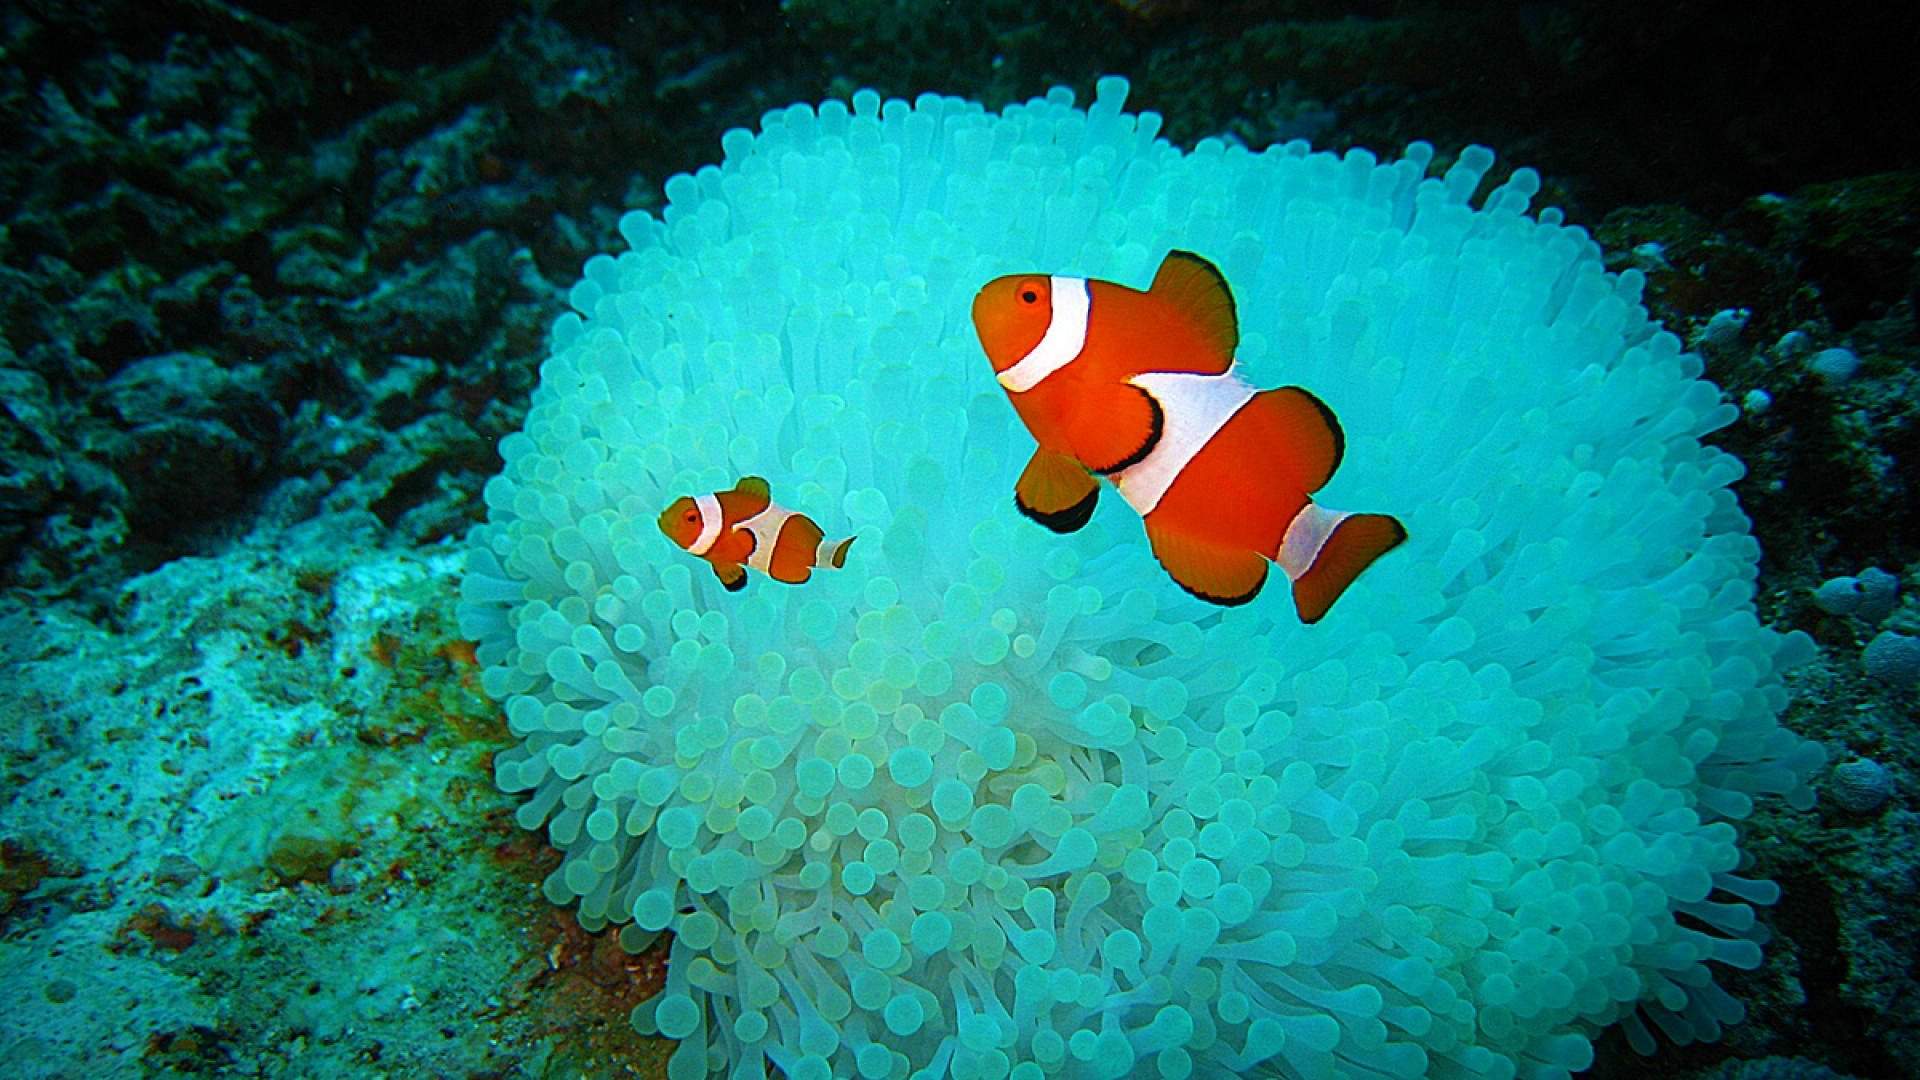 Download Clown Fish Wallpapers 1920x1080